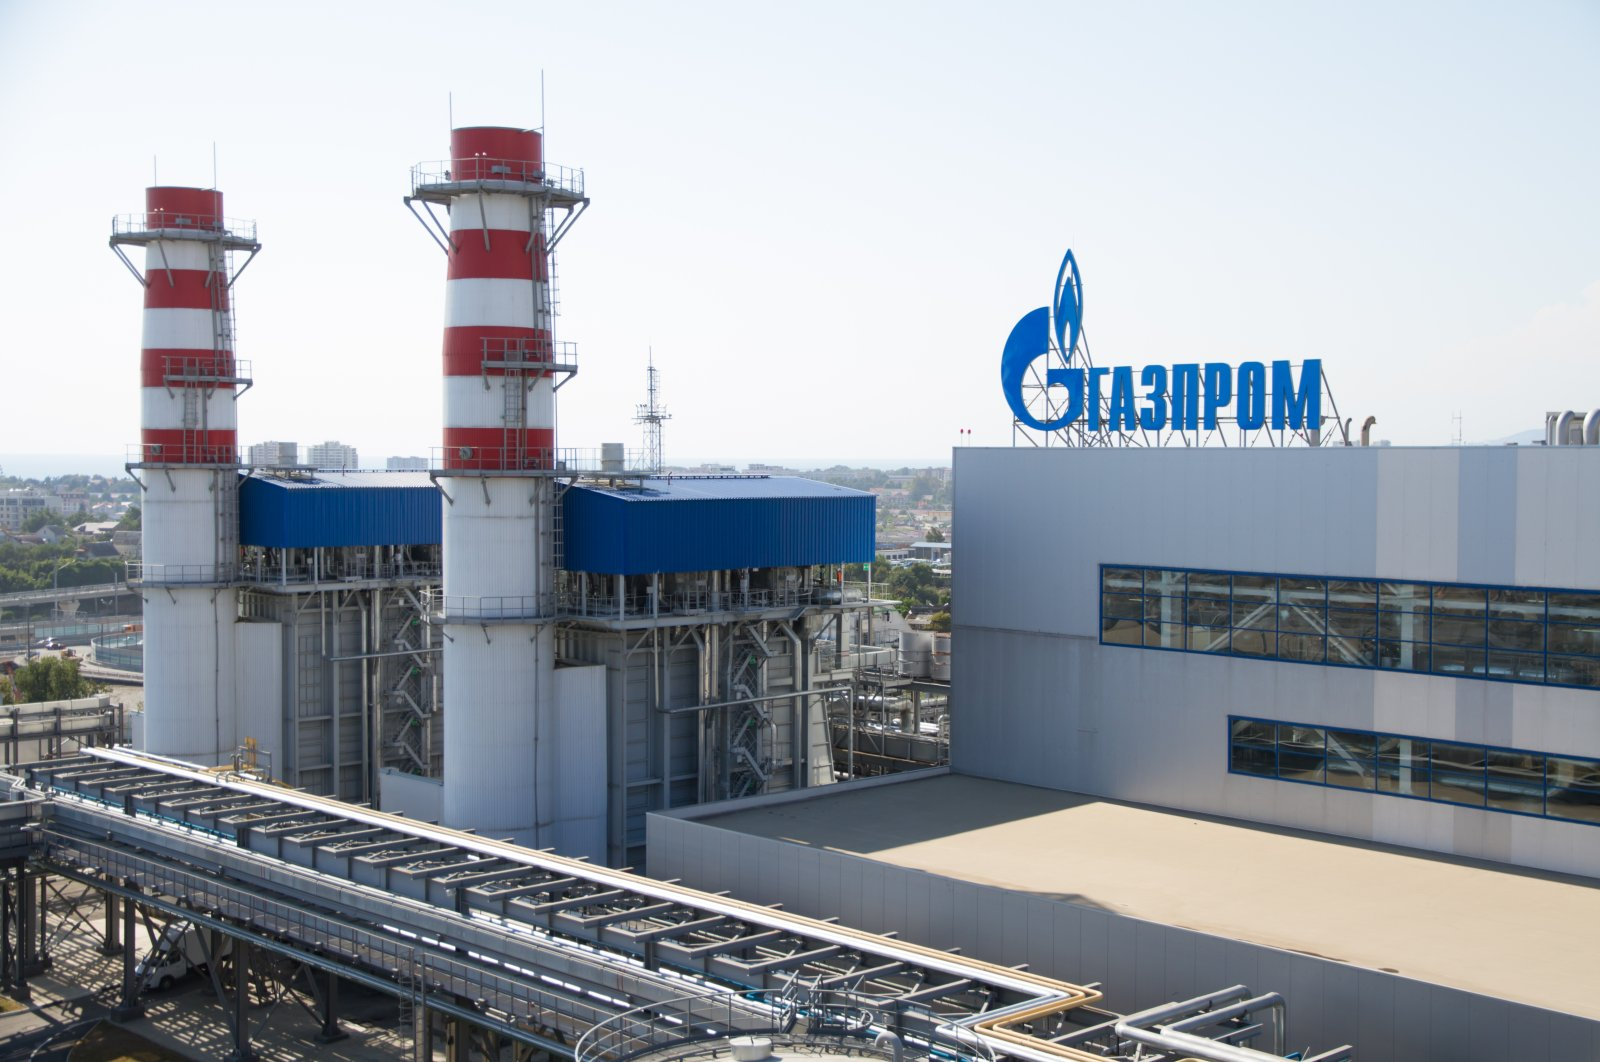 The Gazprom company logo on the roof of a thermal power plant, Adler, Russia, June 26, 2013. (Shutterstock Photo)